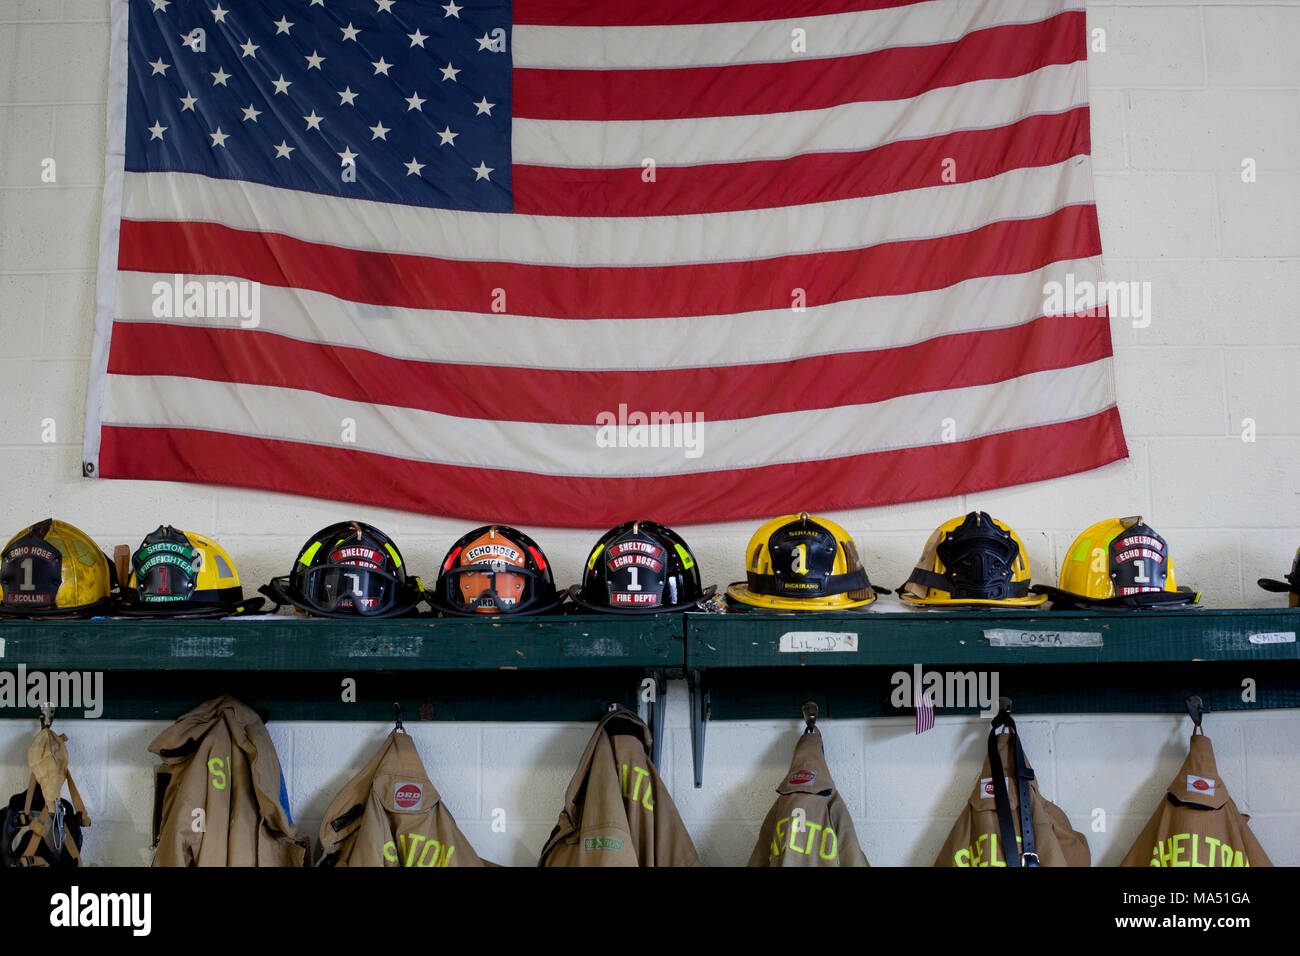 Protective gear, firemen's helmets, and turnout coats along with an American flag on display in the local volunteer firehouse - Stock Image